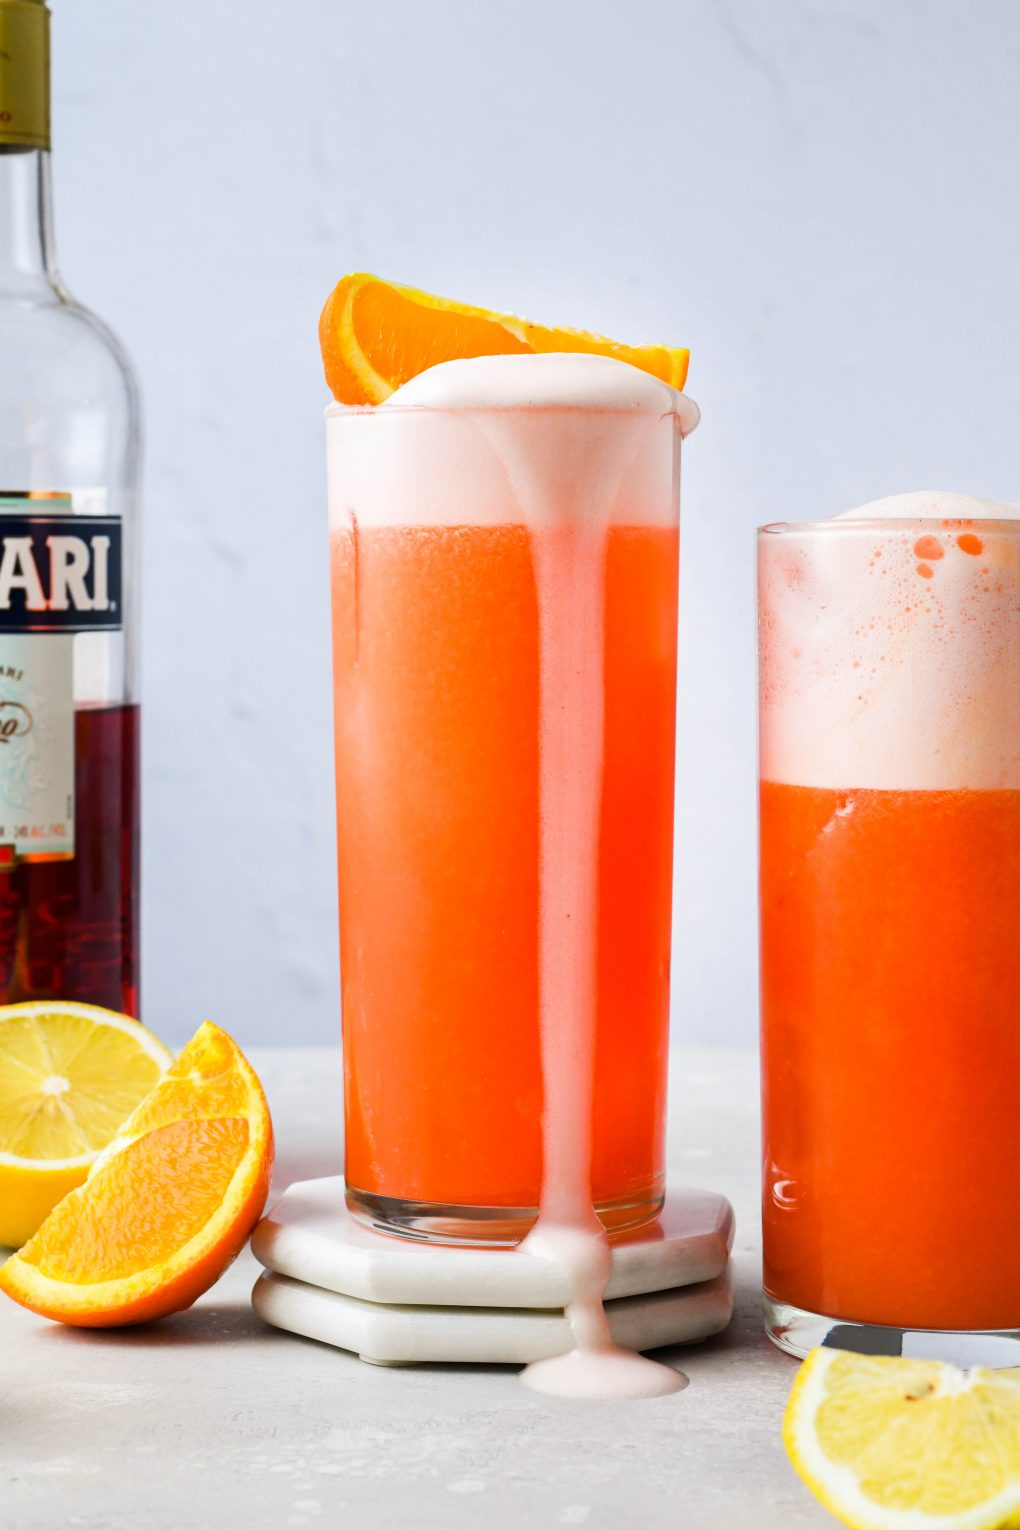 Straight on image of two side by side orange campari vodka sour cocktails, the centered cocktail with an orange wedge on the top of the drink and egg white foam flowing over the side of the high ball glass. On a light background next to some scattered orange and lemon wedges, with a bottle of Campari in the background.